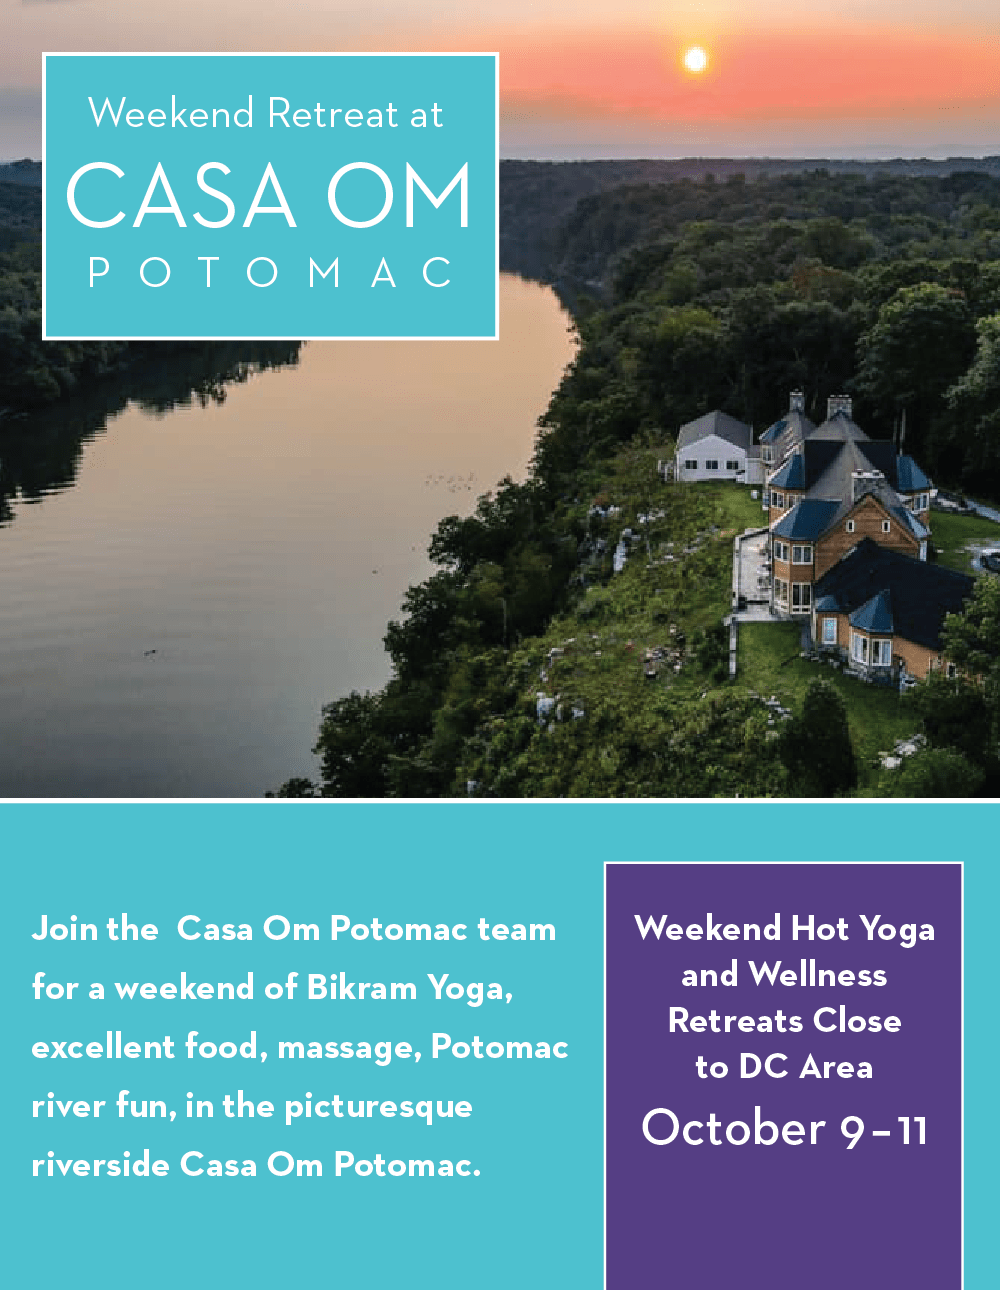 Weekend Retreat at Casa Om Potomac